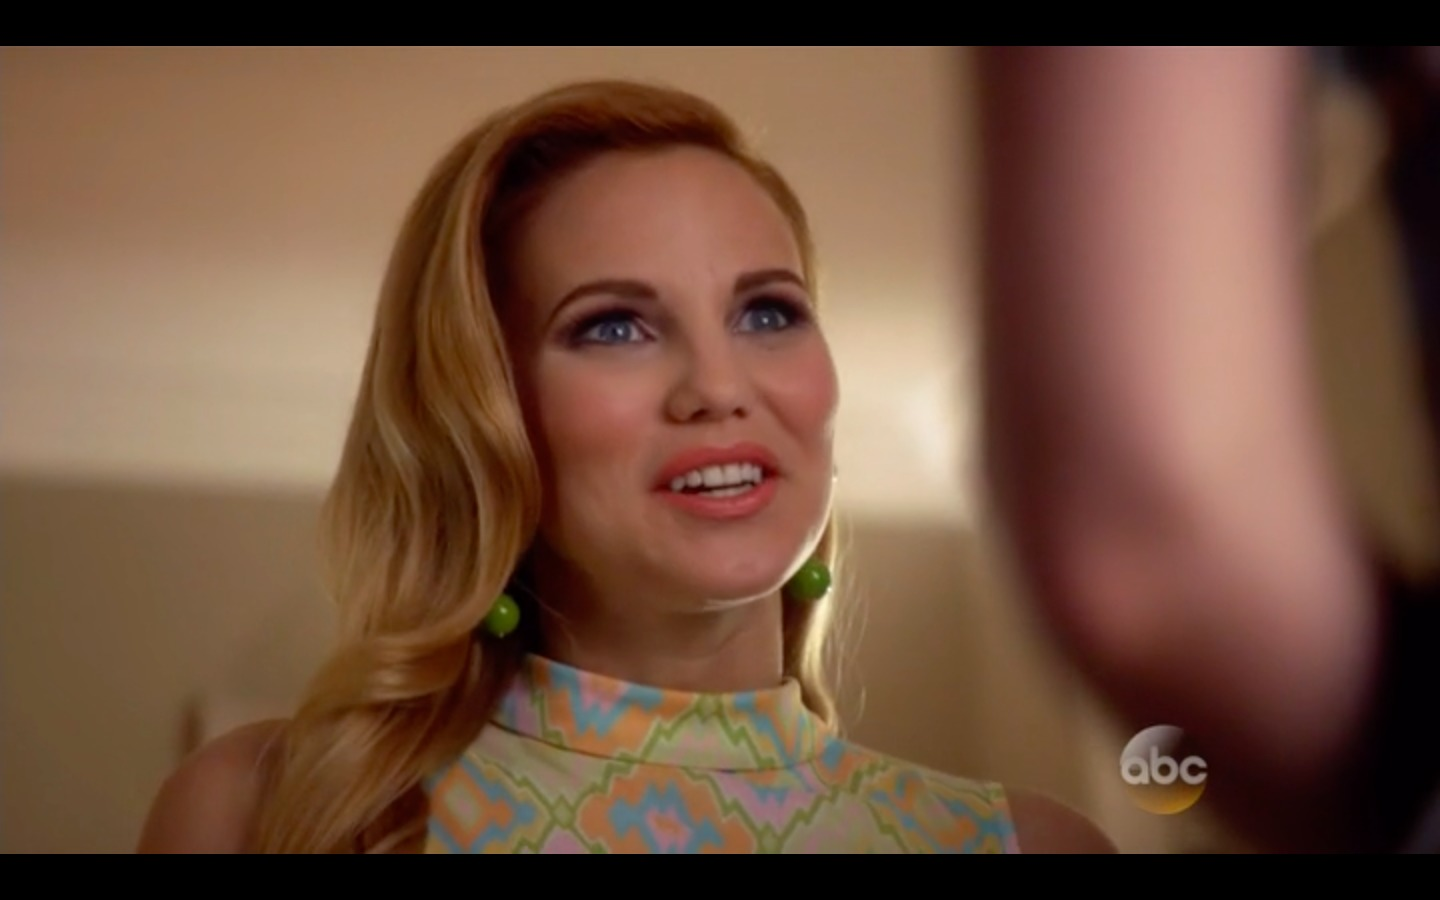 Laura Flannery in The Astronaut Wives Club (2015)